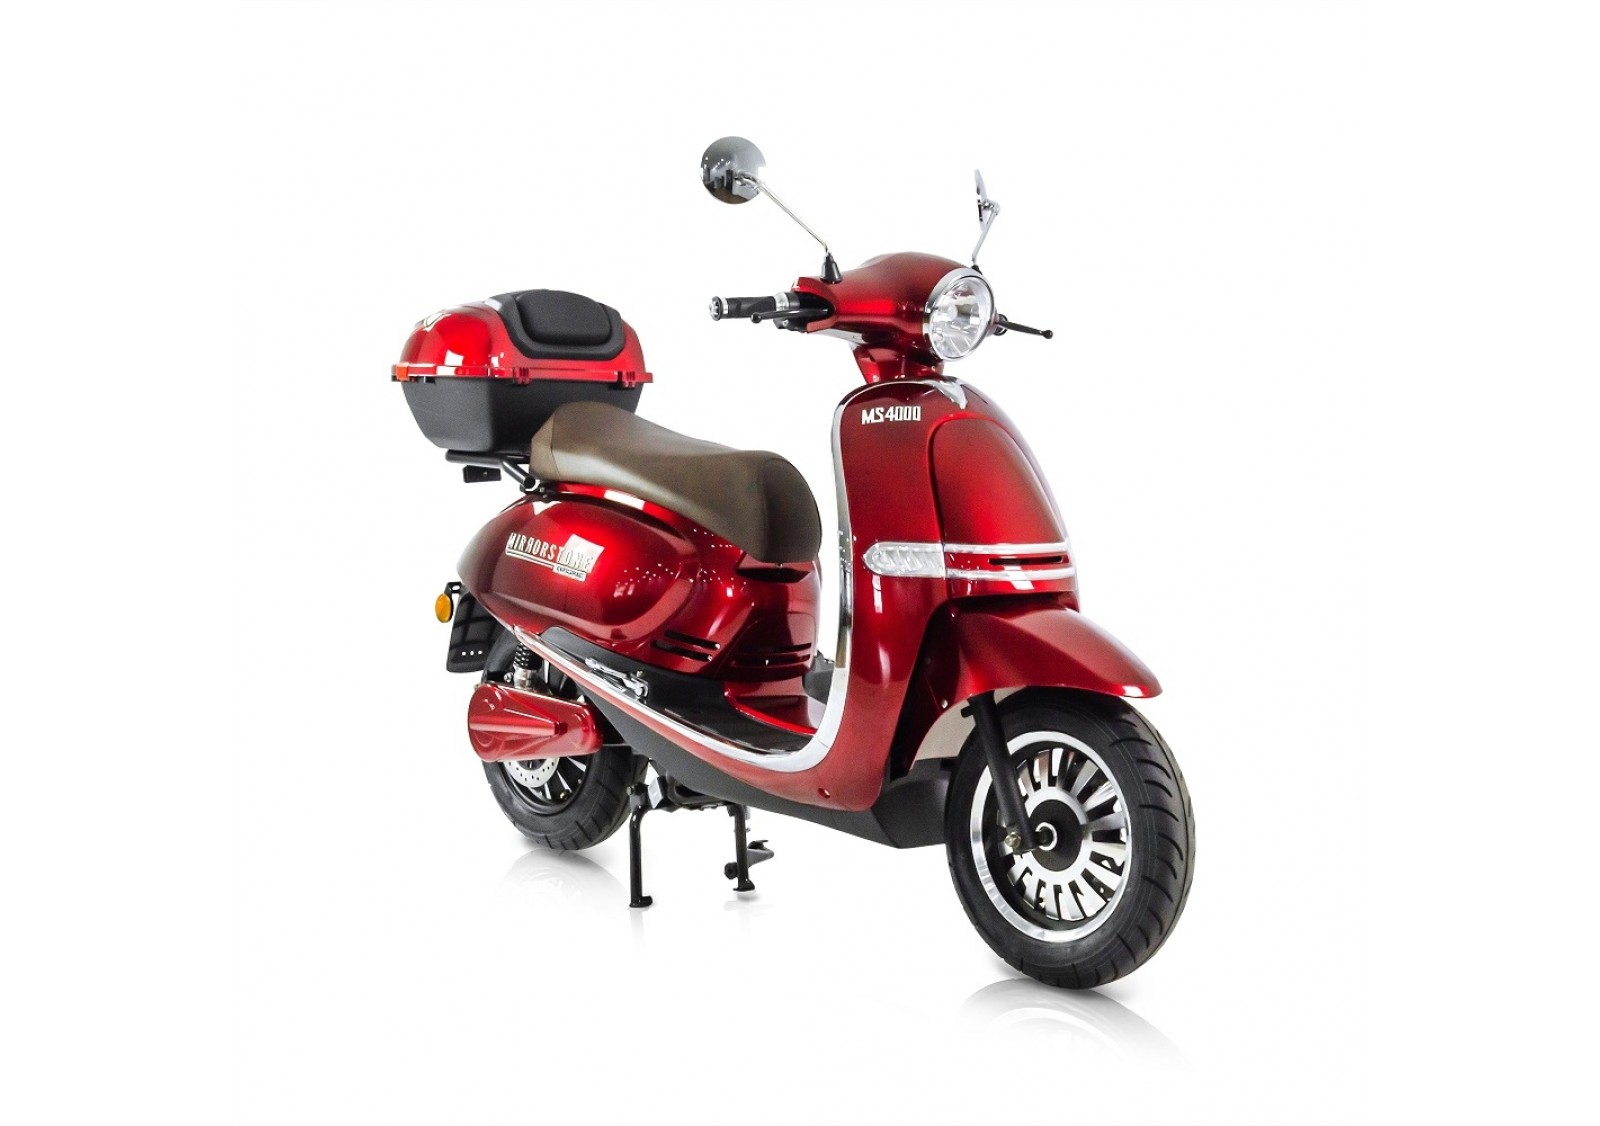 MS4000 Red Vintage Electric Scooter